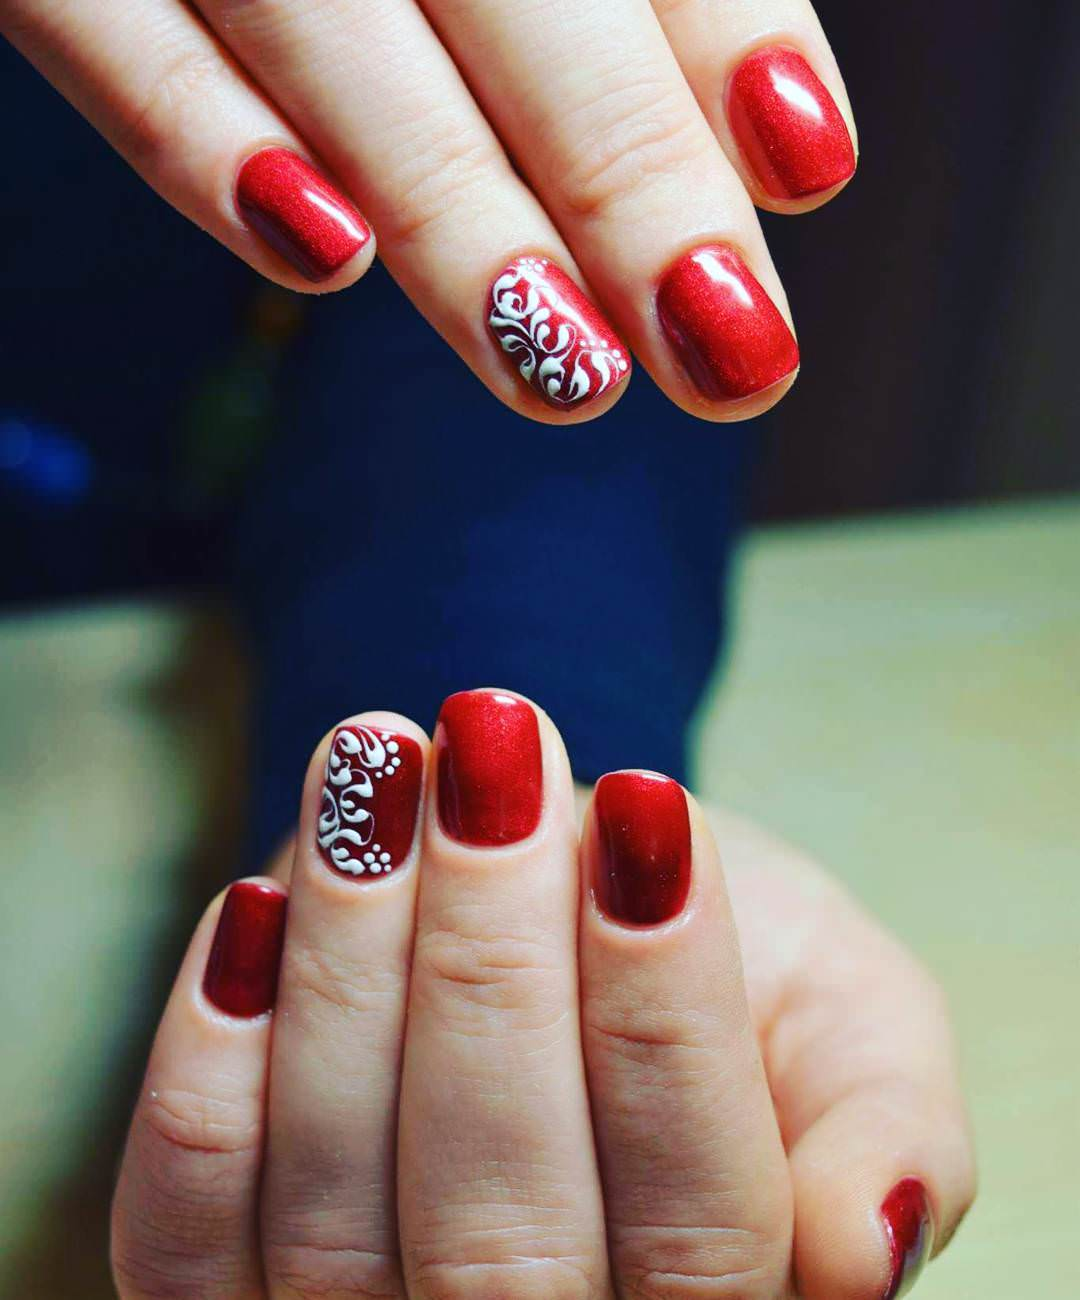 Red Nail Art Designs For Short Nails: 29+ Red Acrylic Nail Art Designs , Ideas